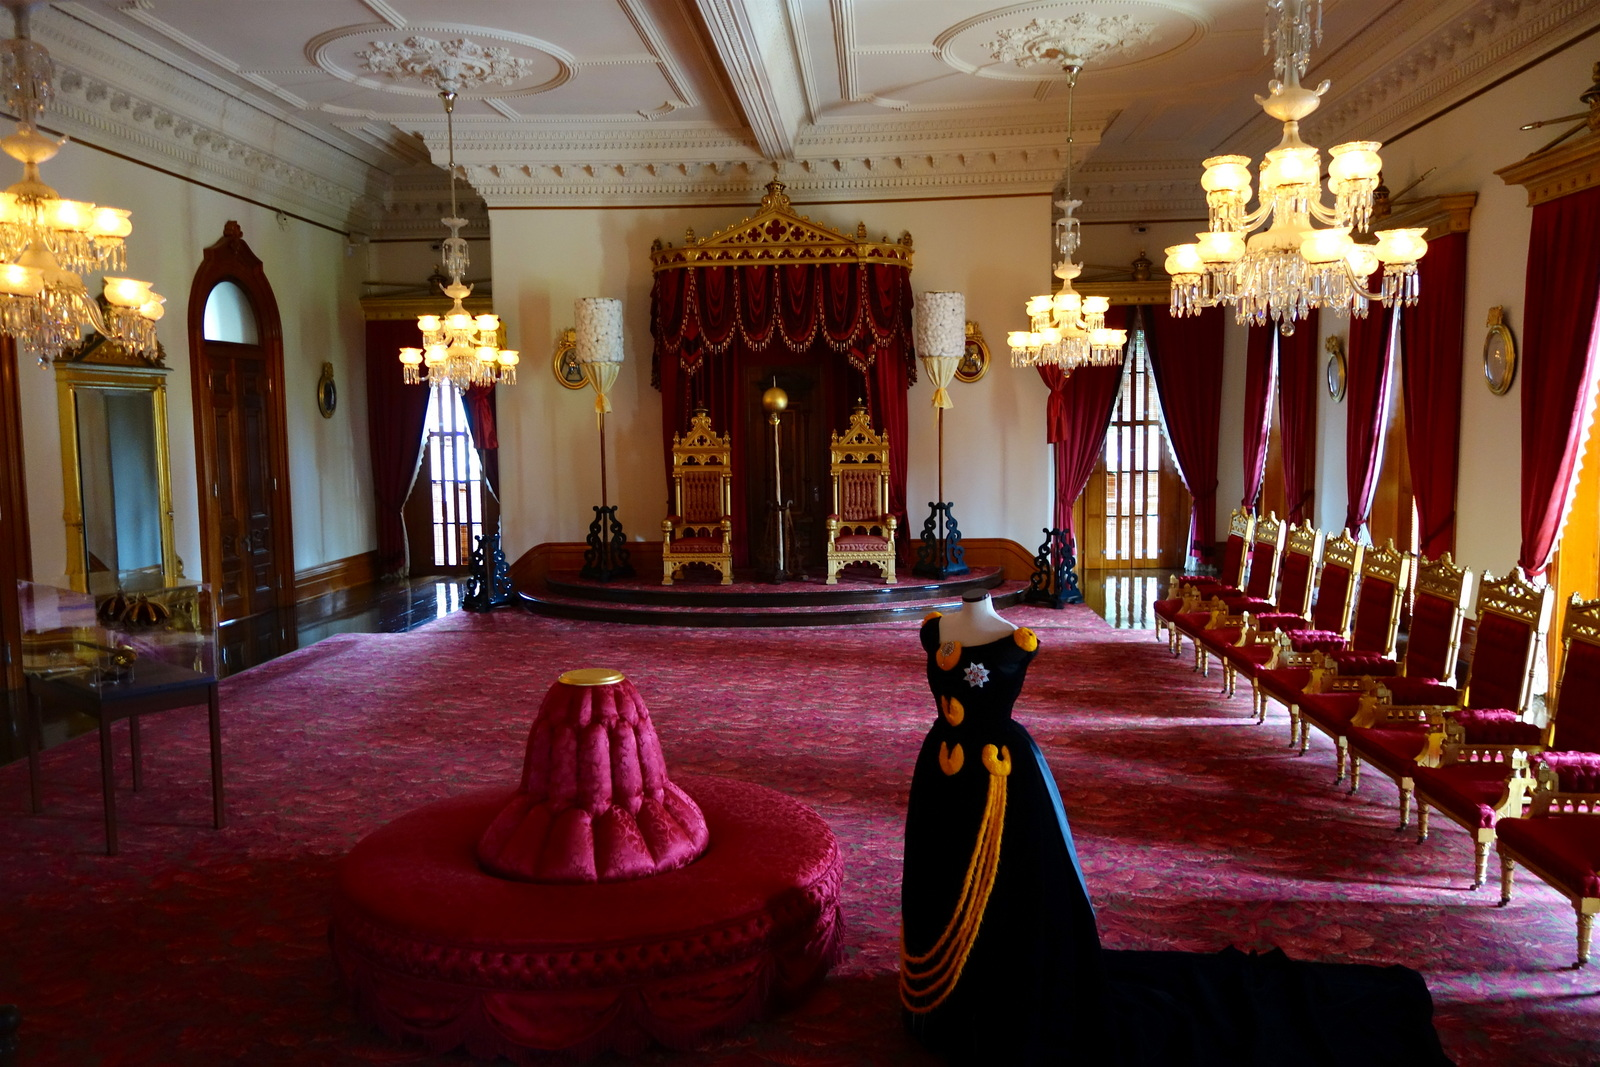 Throne Room, King Kalākaua and Queen Lili'uokalani. From Digging Deeper into Hawaiian History on the Hawai'i Monarchs Tour